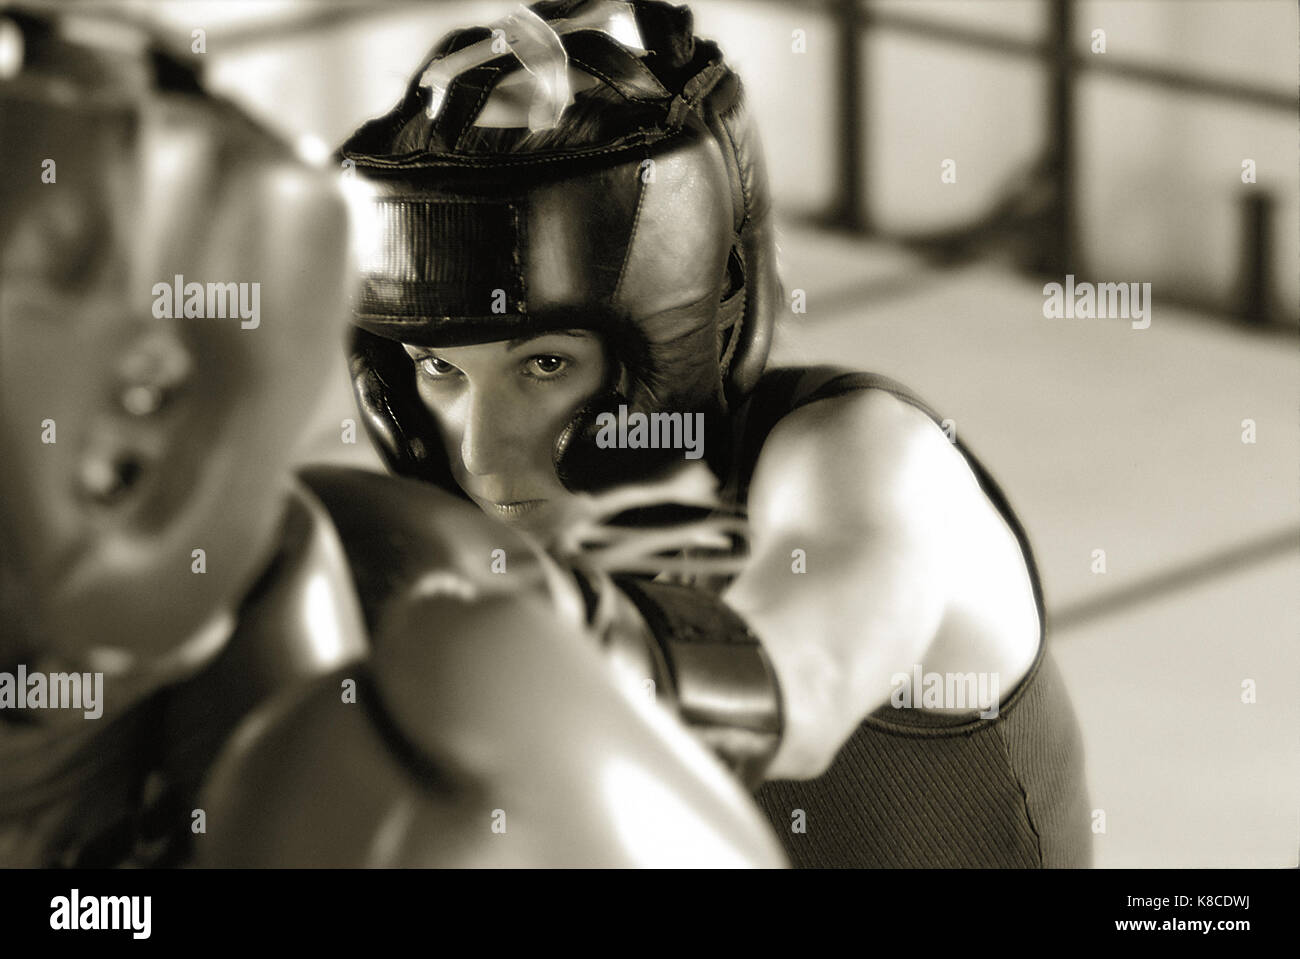 Women Boxers, fight, fighters - Stock Image